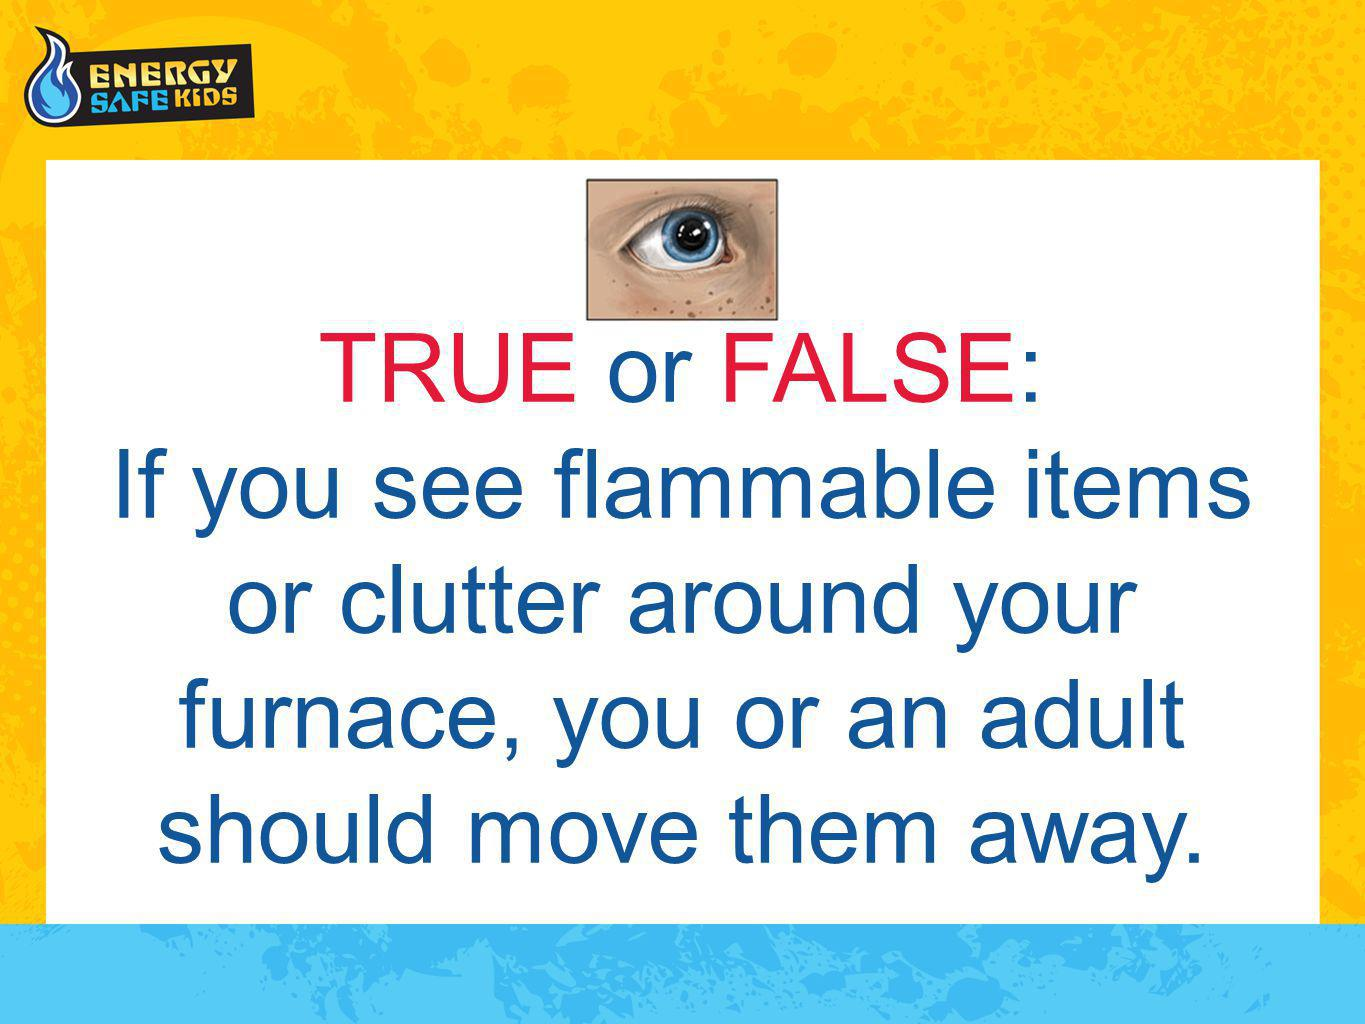 TRUE or FALSE: If you see flammable items or clutter around your furnace, you or an adult should move them away.